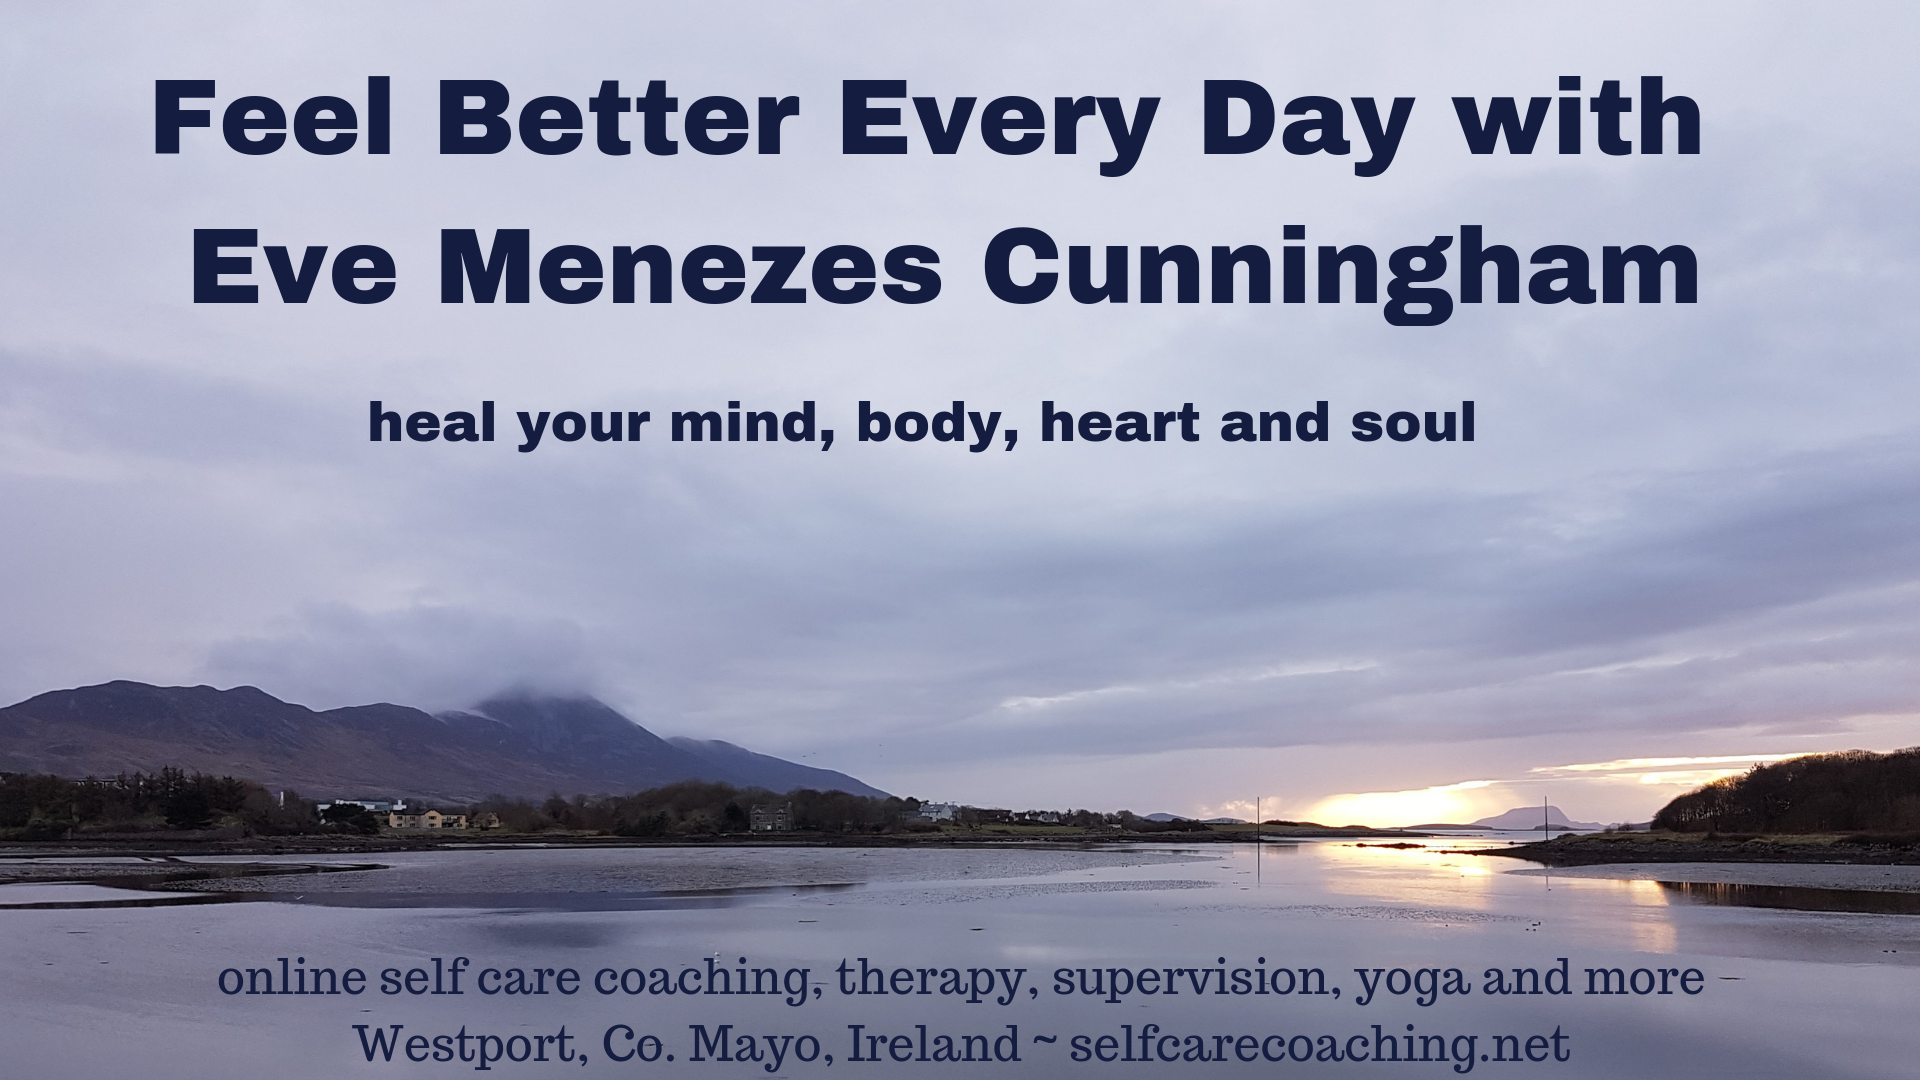 Feel Better Every Day with Eve Menezes Cunningham Online and telephone SELF CARE COACHING, THERAPY AND SUPERVISION. Westport, Co. Mayo, Ireland. Colchester, Essex, UK Heal your mind body heart and soul